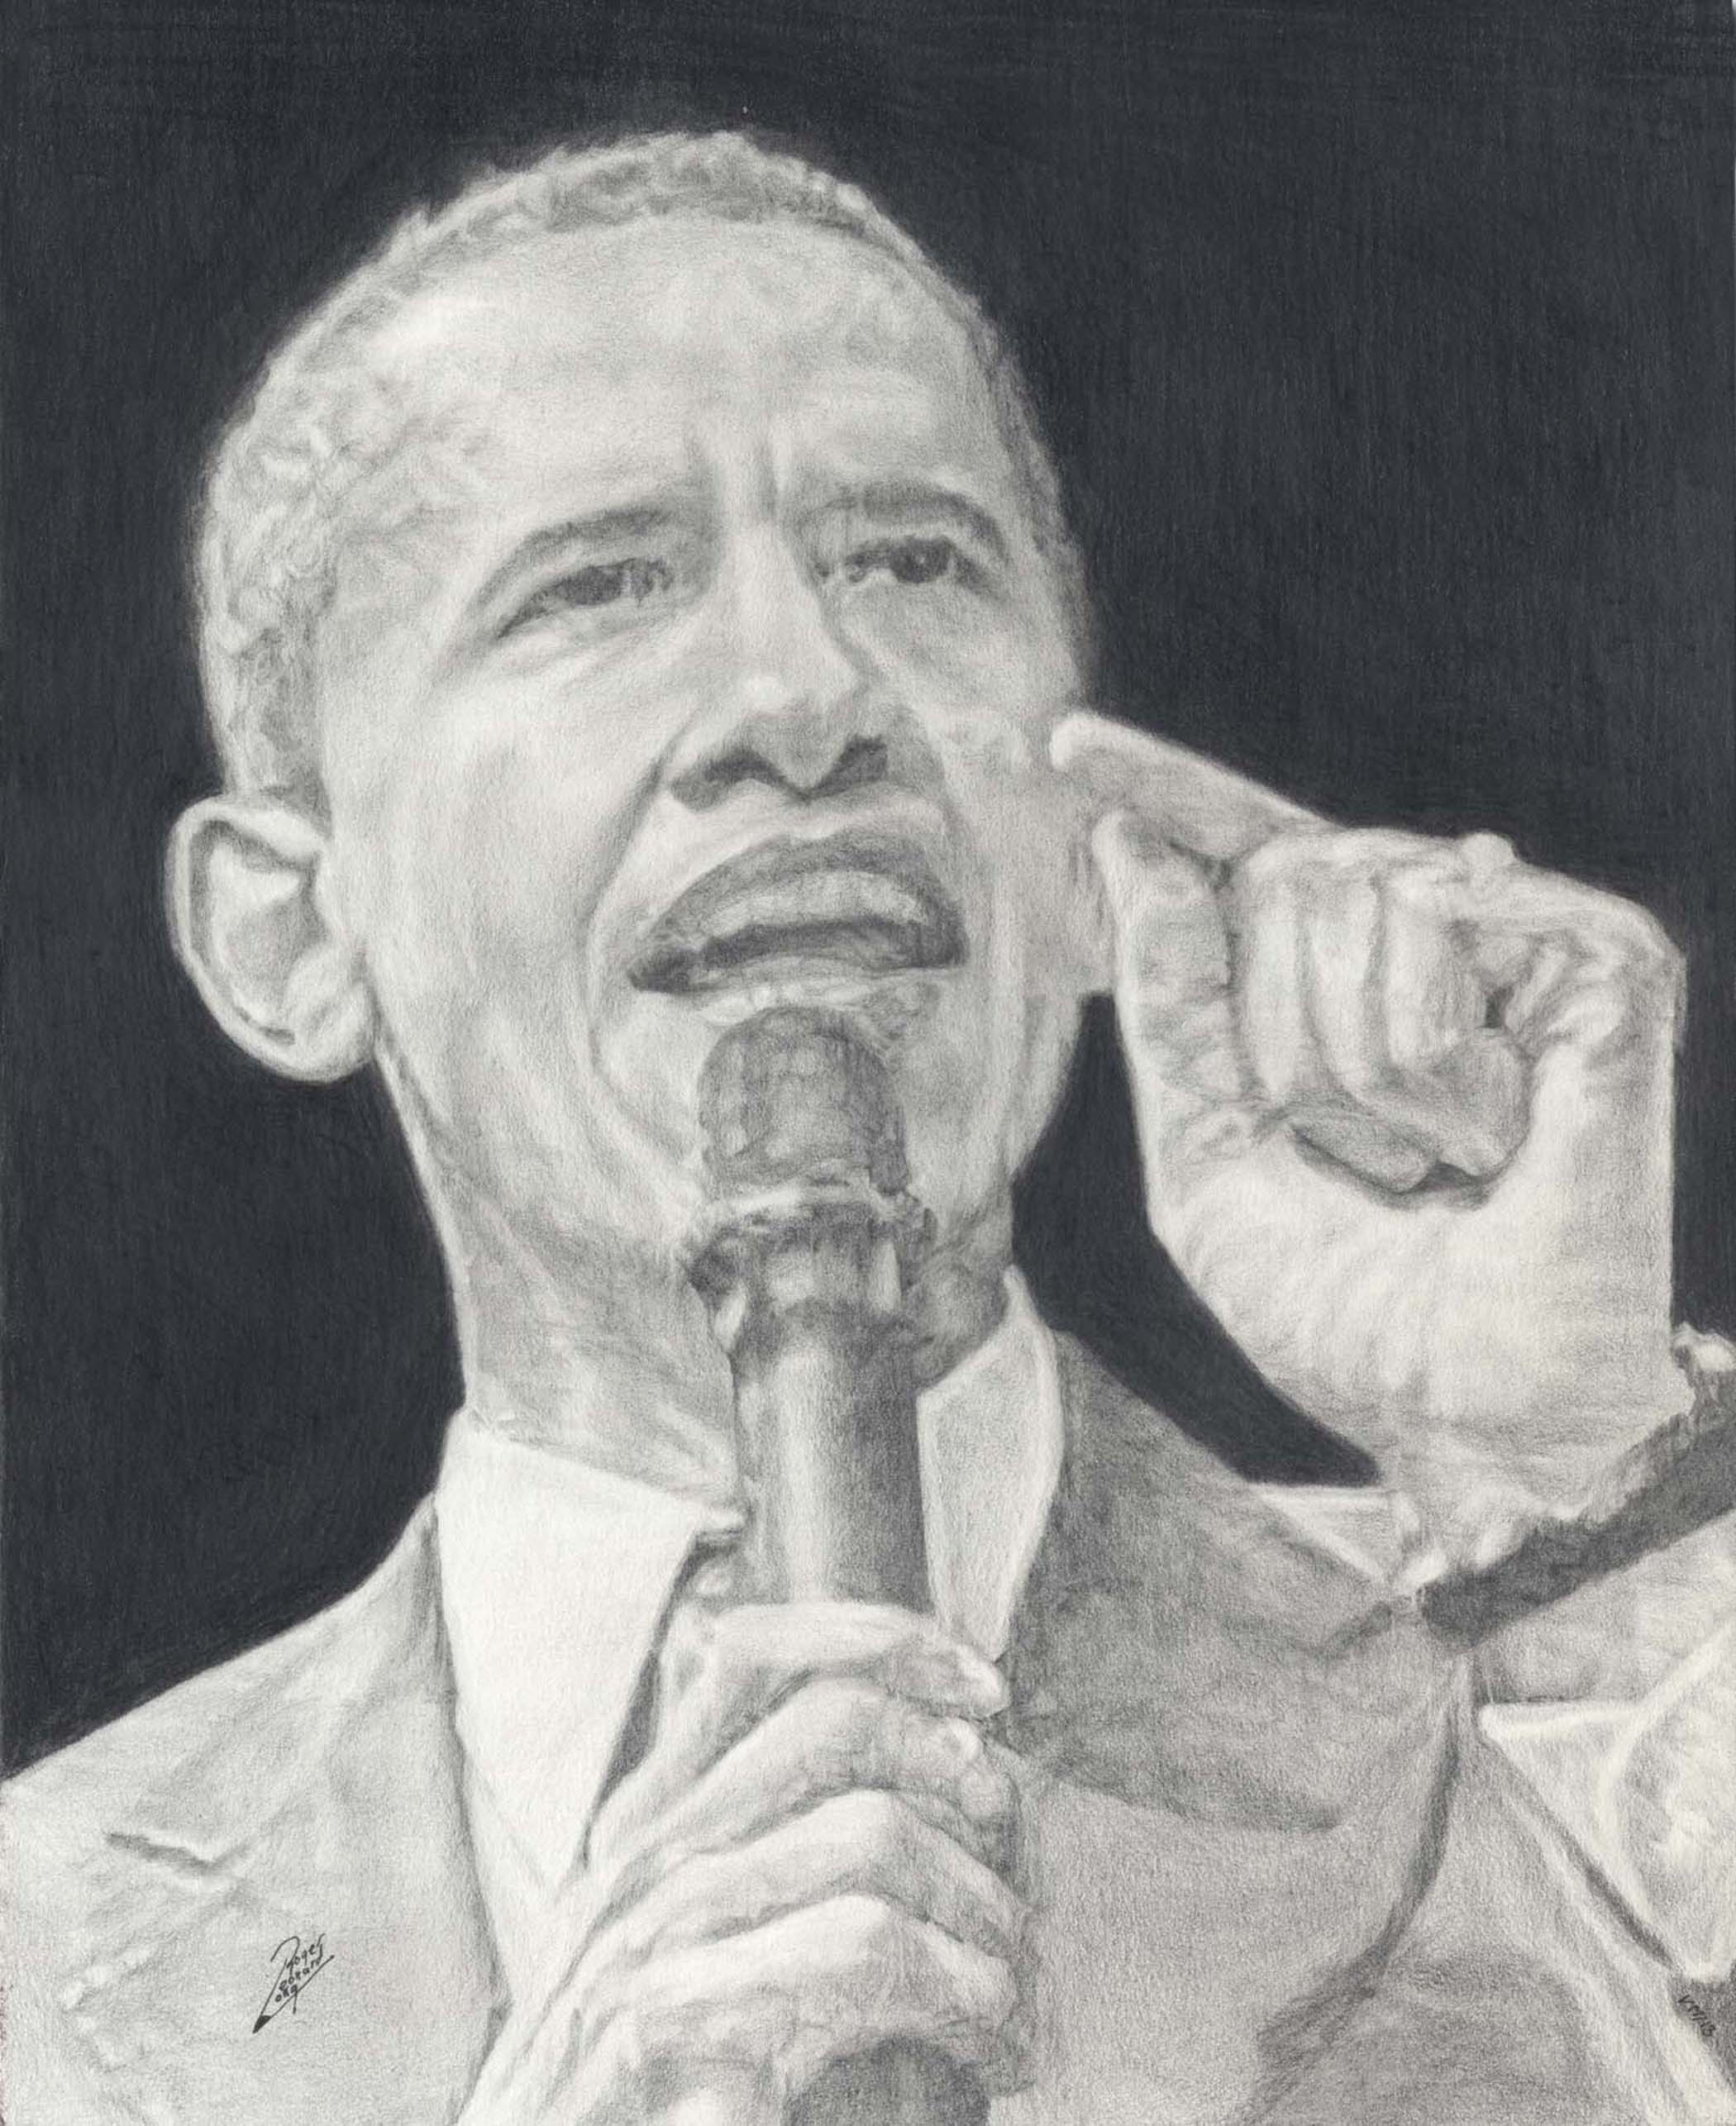 Yes We Can  This is a portrait of former President, Barack Obama. Your signed print is available in multiple sizes and will be delivered with a certificate of authenticity and ready to frame. Thank you for collecting and viewing. Join my mailing list for new portrait print releases and more!